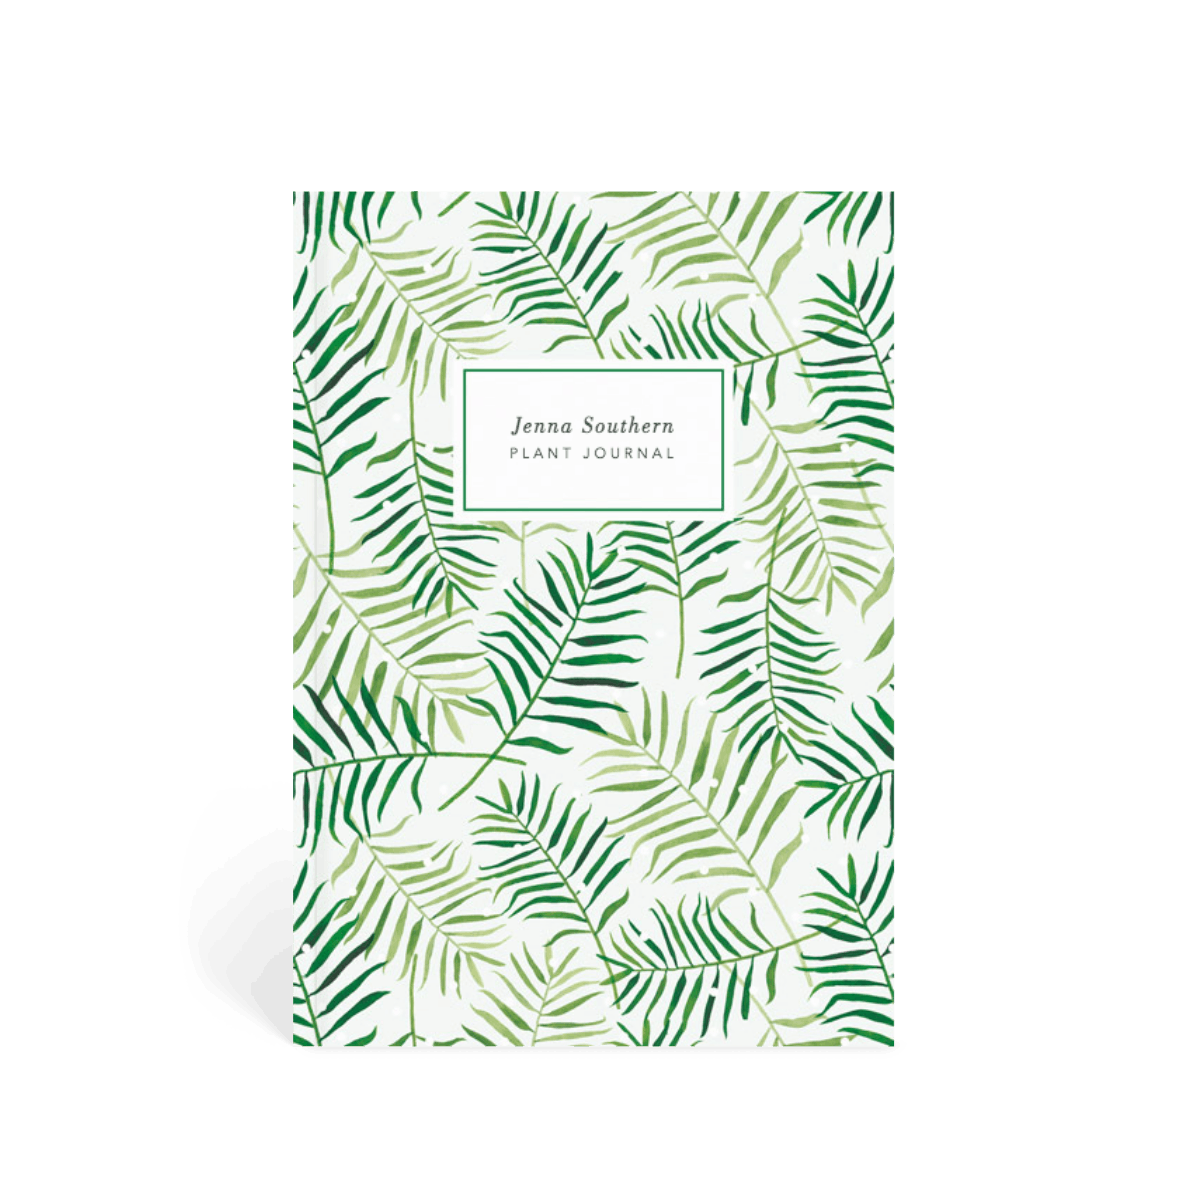 Https%3a%2f%2fwww.papier.com%2fproduct image%2f42031%2f25%2fpalm leaves 10719 front 1539700196.png?ixlib=rb 1.1